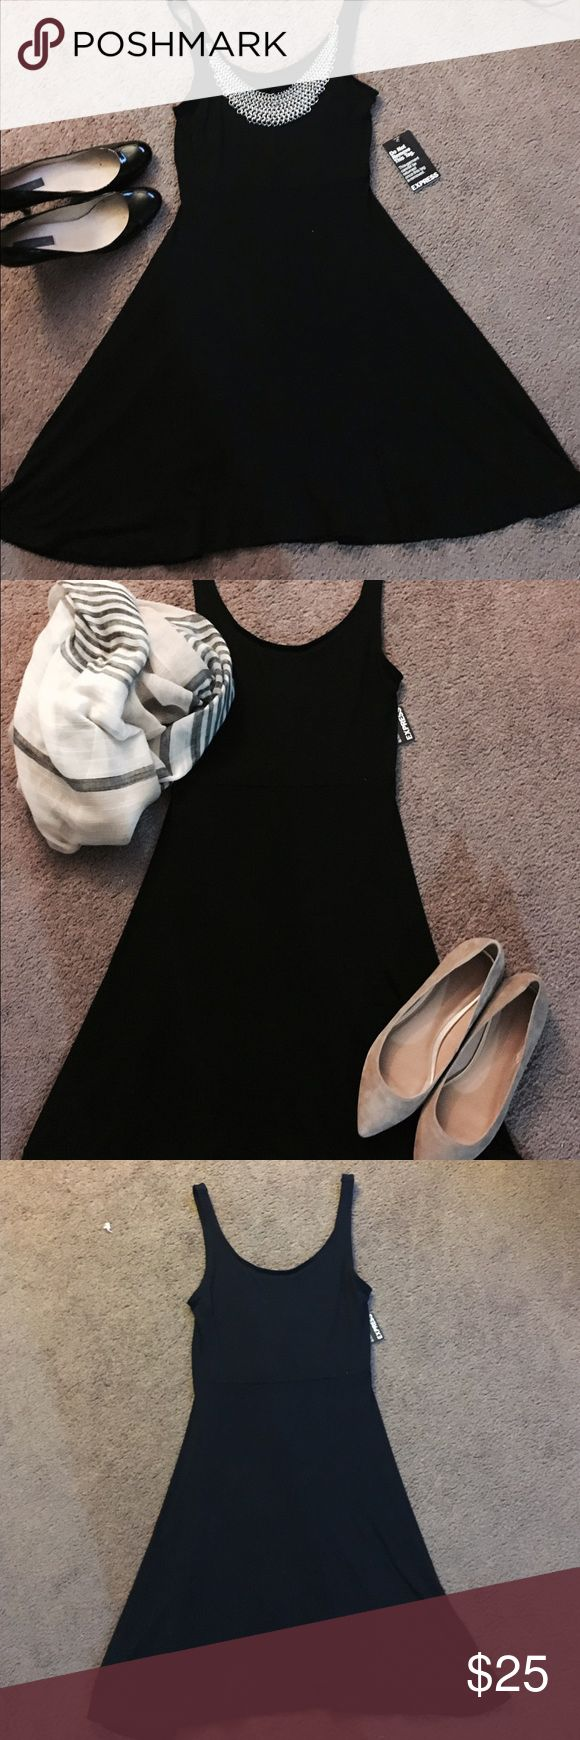 Lil Black Dress! New Simple and perfect Rayon and Spandex dress! Never worn, fits amazing and easy, very comfortable and so versatile- dress up or down, layer with leggings! It really is the perfect everyday black dress! Nwt- hits right above knee Express Dresses Midi